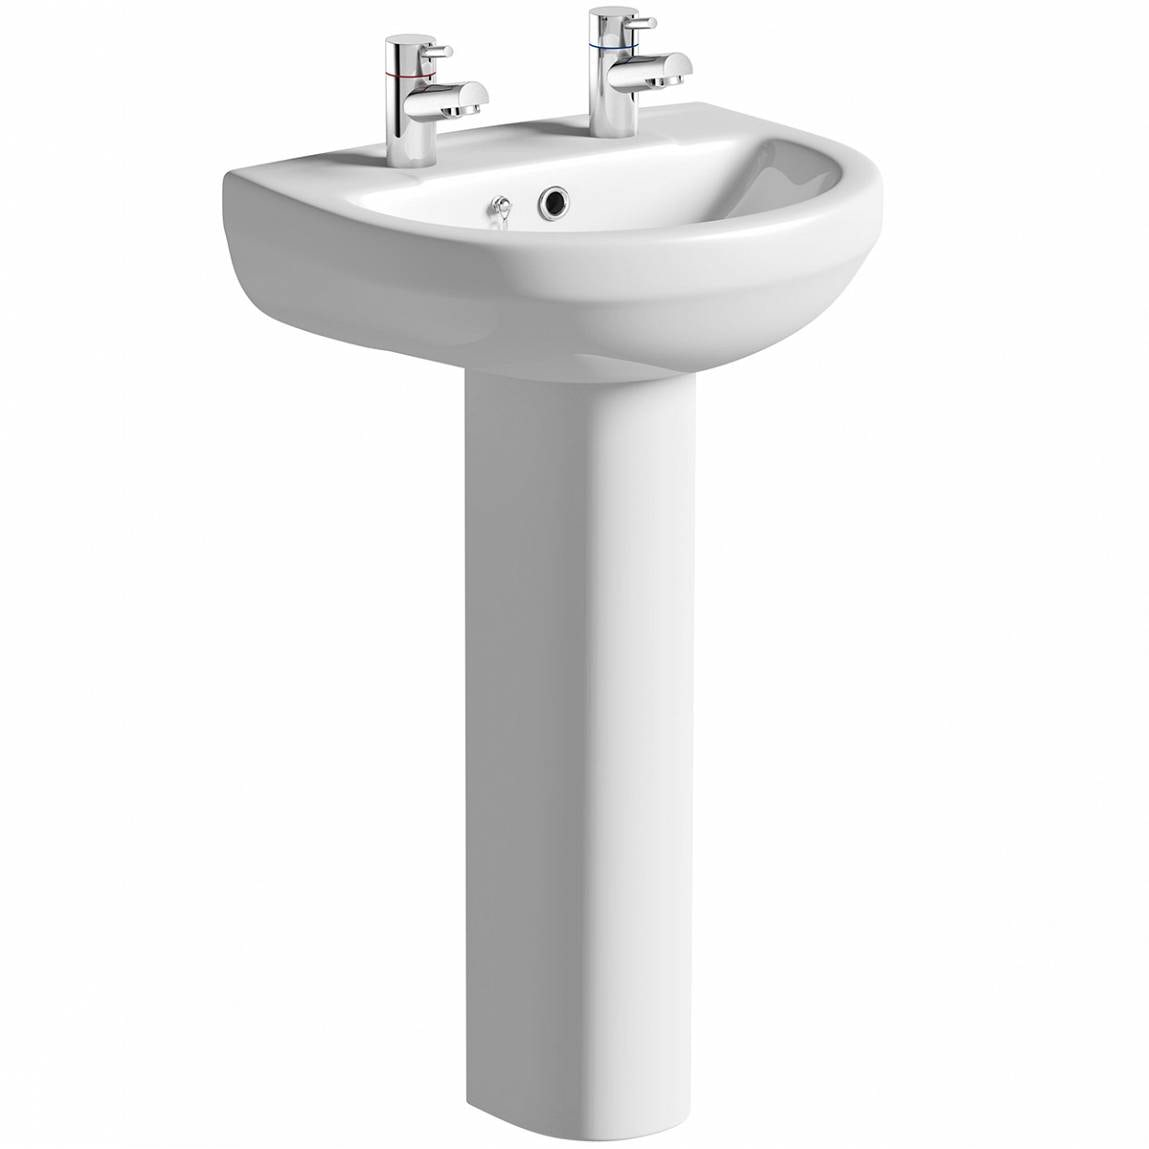 Orchard Eden 2 tap hole full pedestal basin